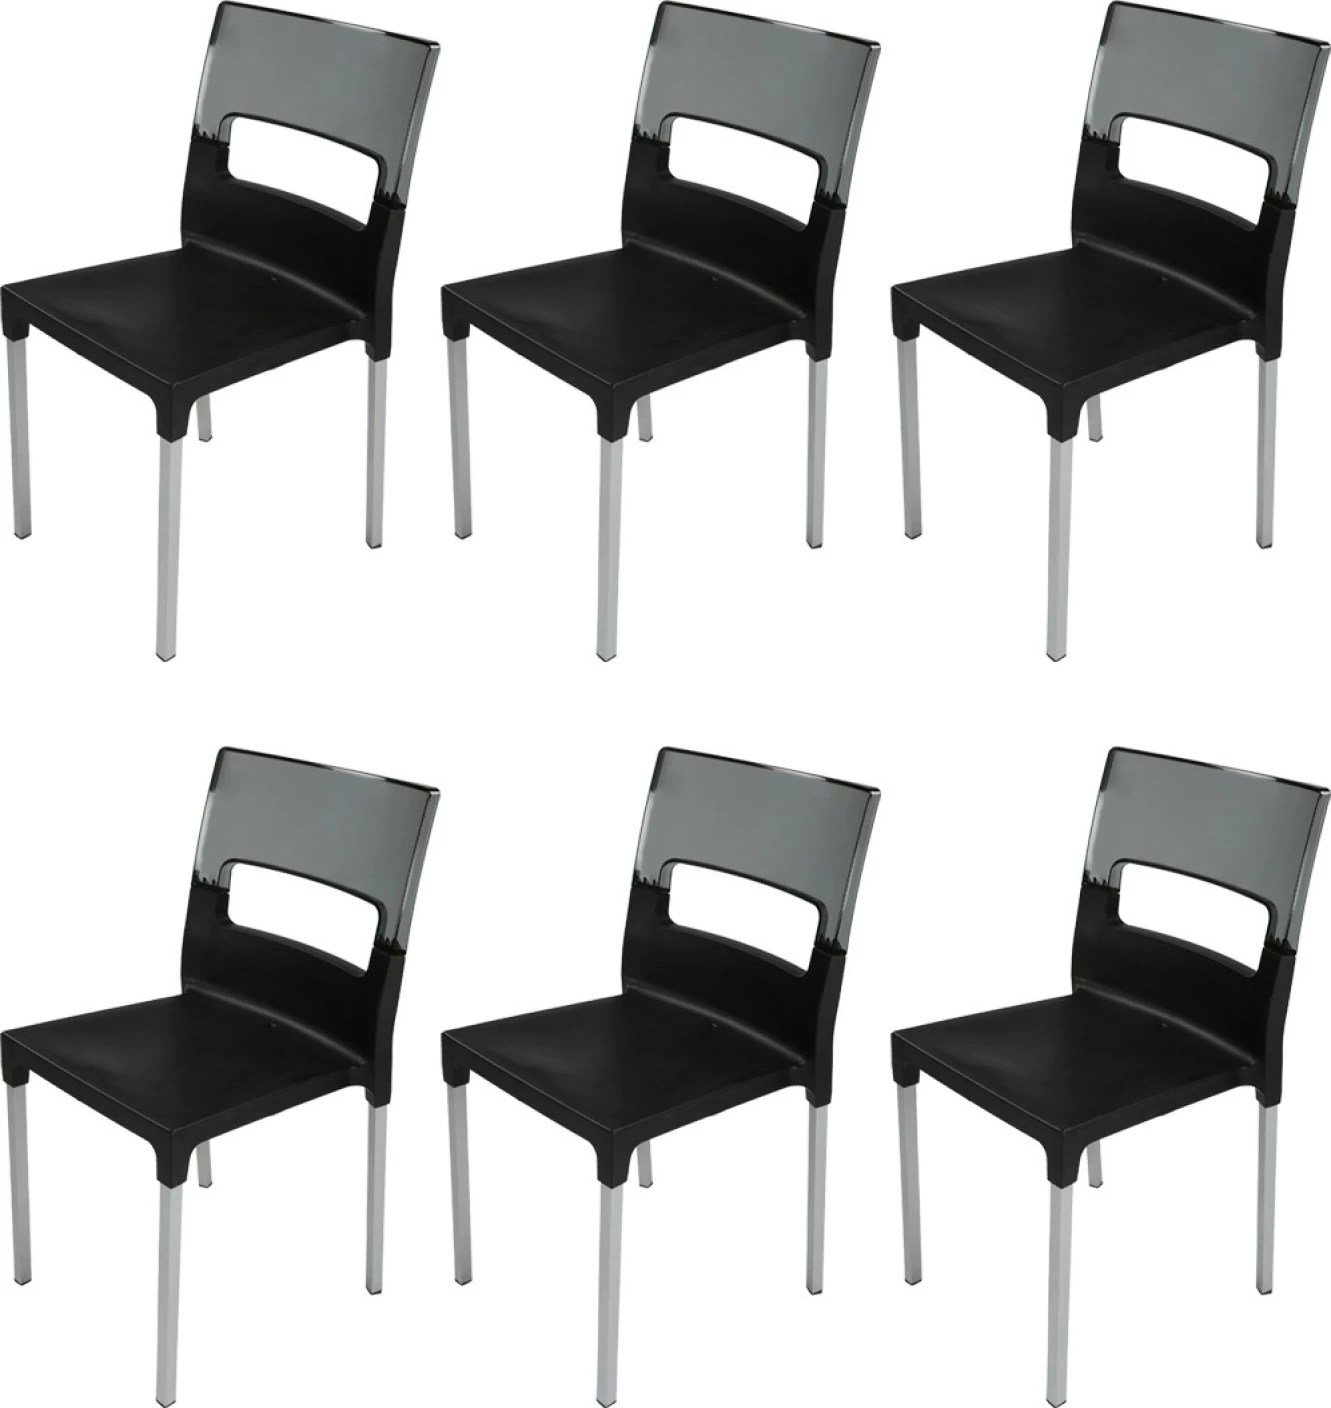 Supreme Furniture Chairs Price Supreme Diva Plastic Outdoor Chair Price In India Buy